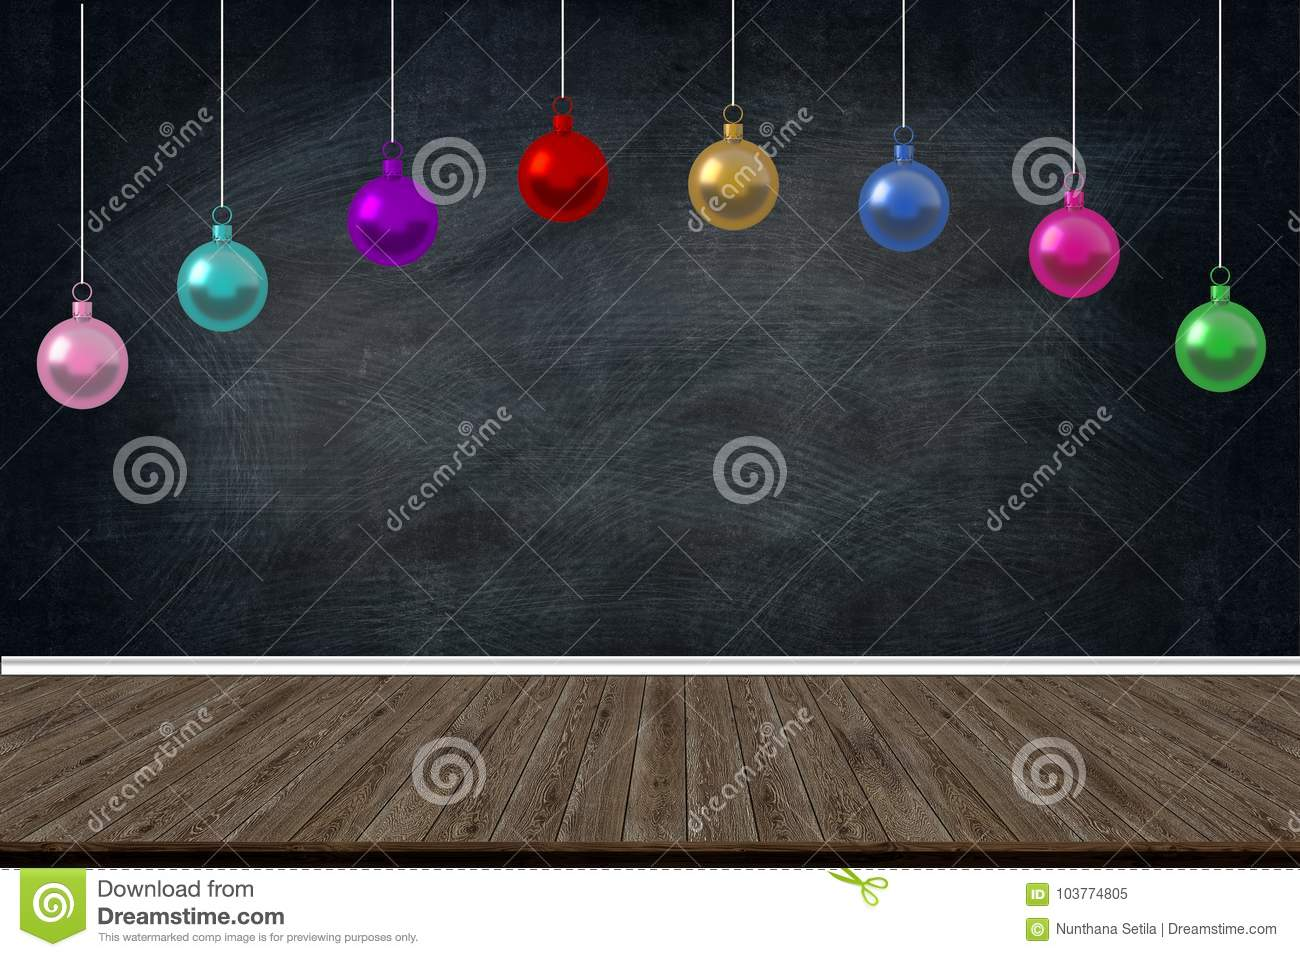 Christmas Holiday Balls ornaments hanging in the class of school on blackboard background. picture copy space for art work design